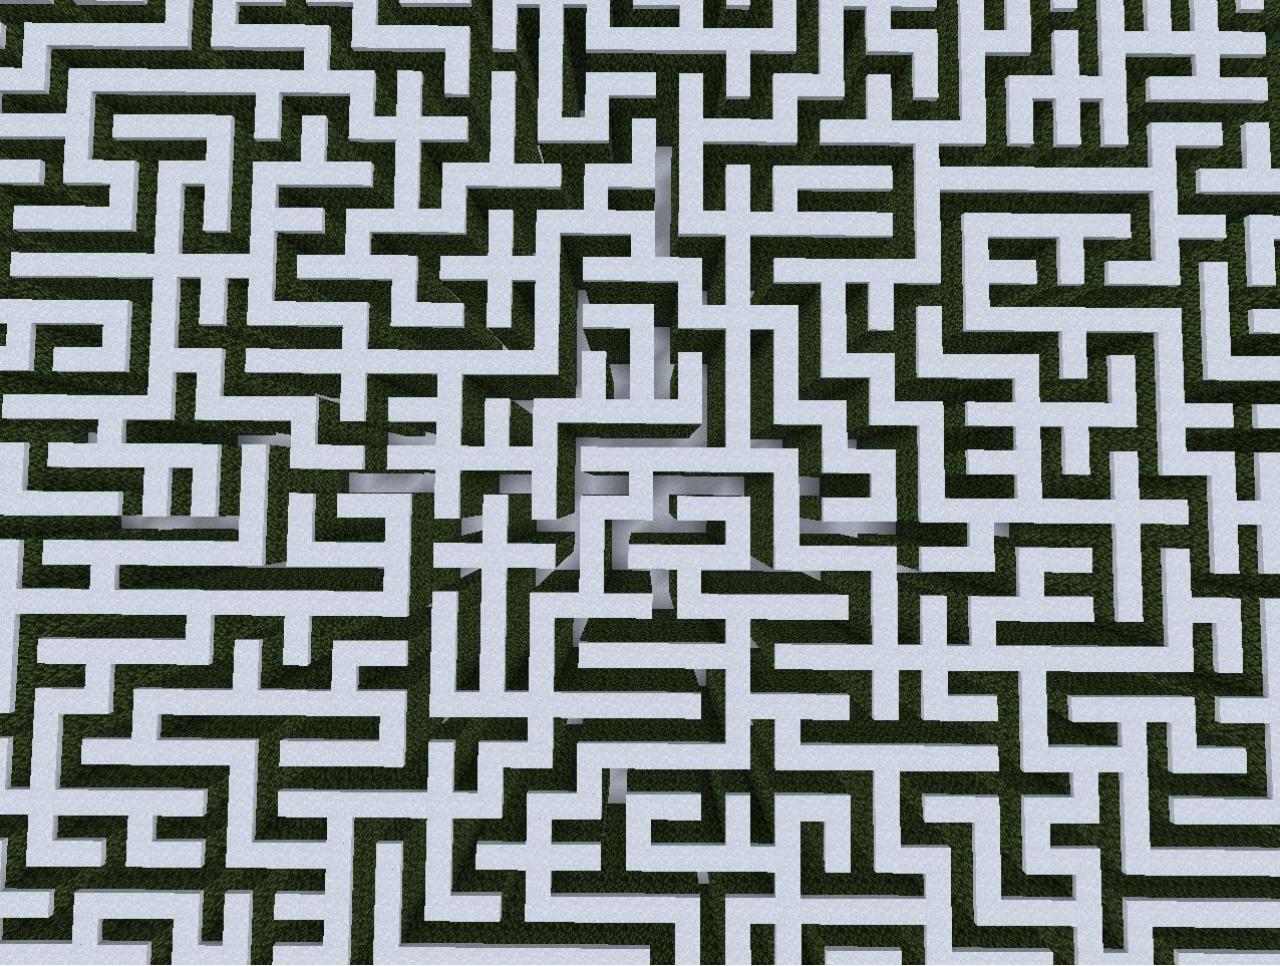 Image Result For Downloads The Maze Download